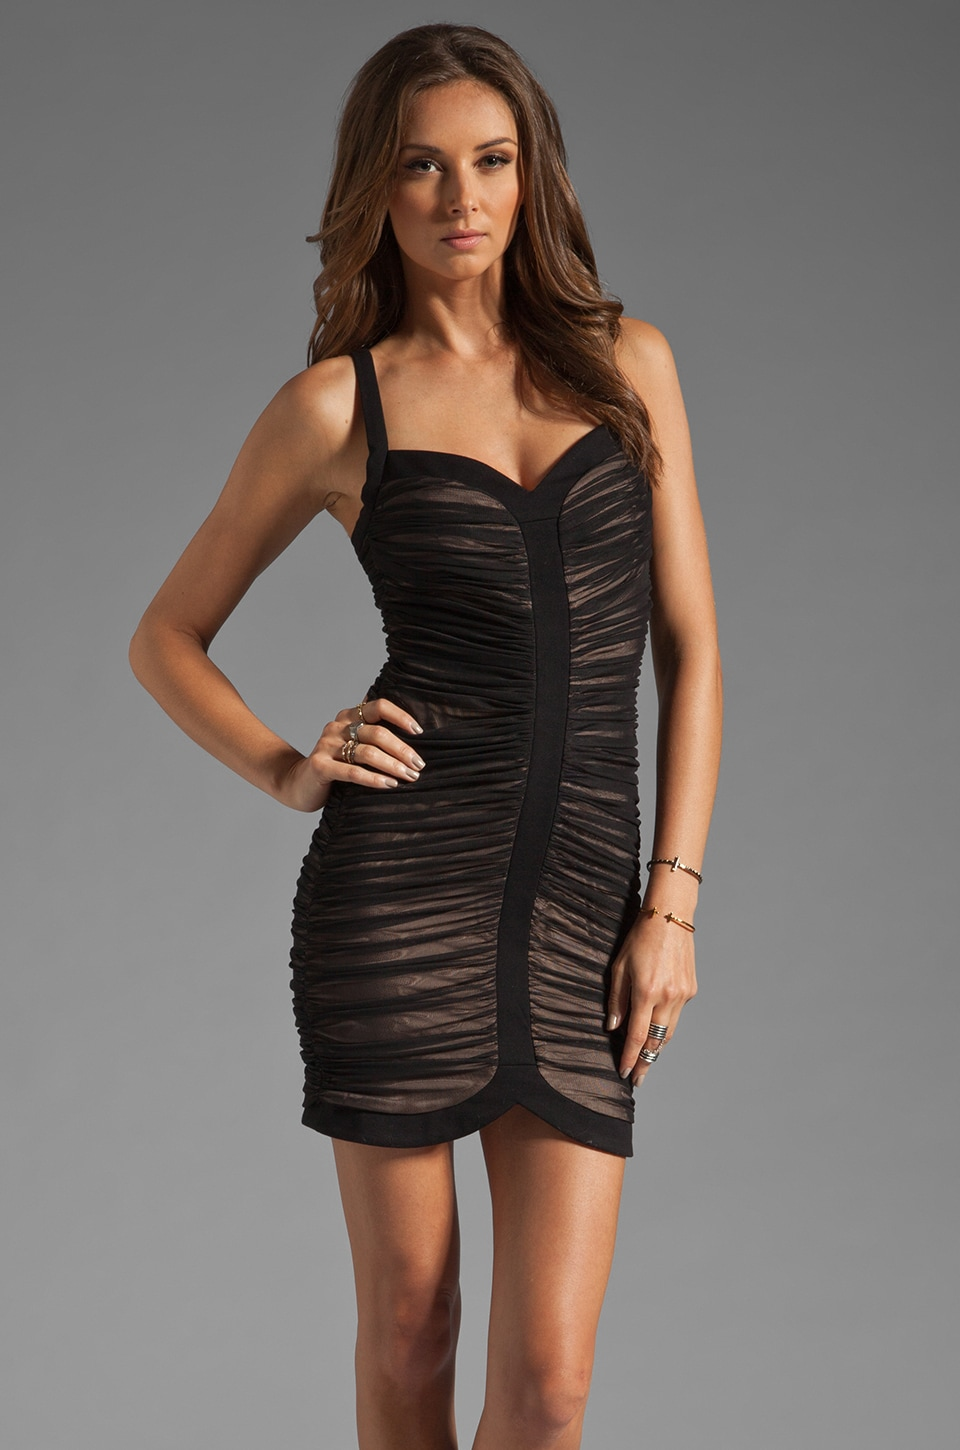 BCBGMAXAZRIA Mini Cocktail Dress in Black Combo